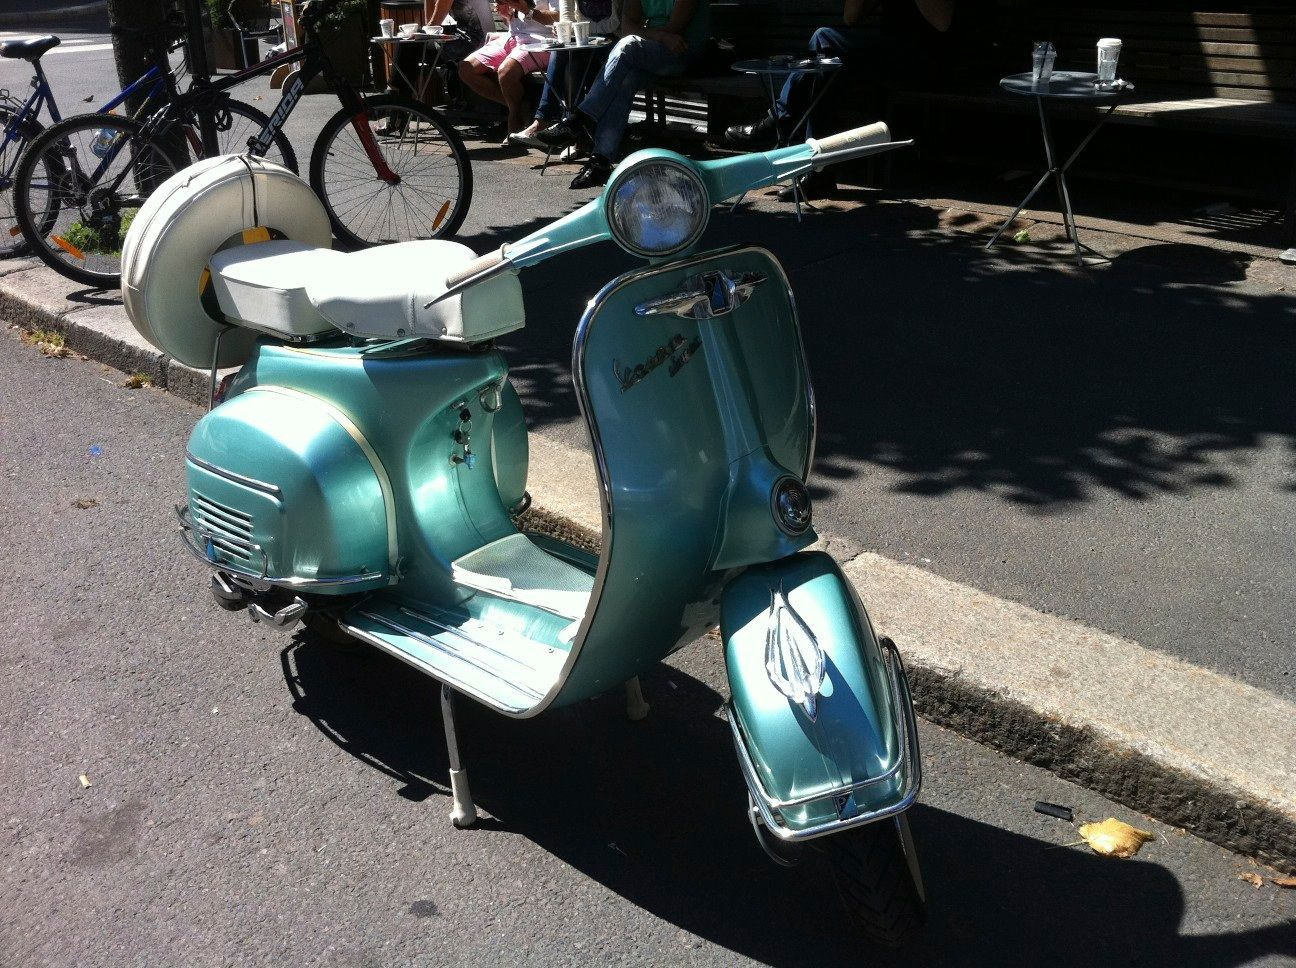 My vespa 150cc - 1958 mod. Great for downtown Oslo :-)